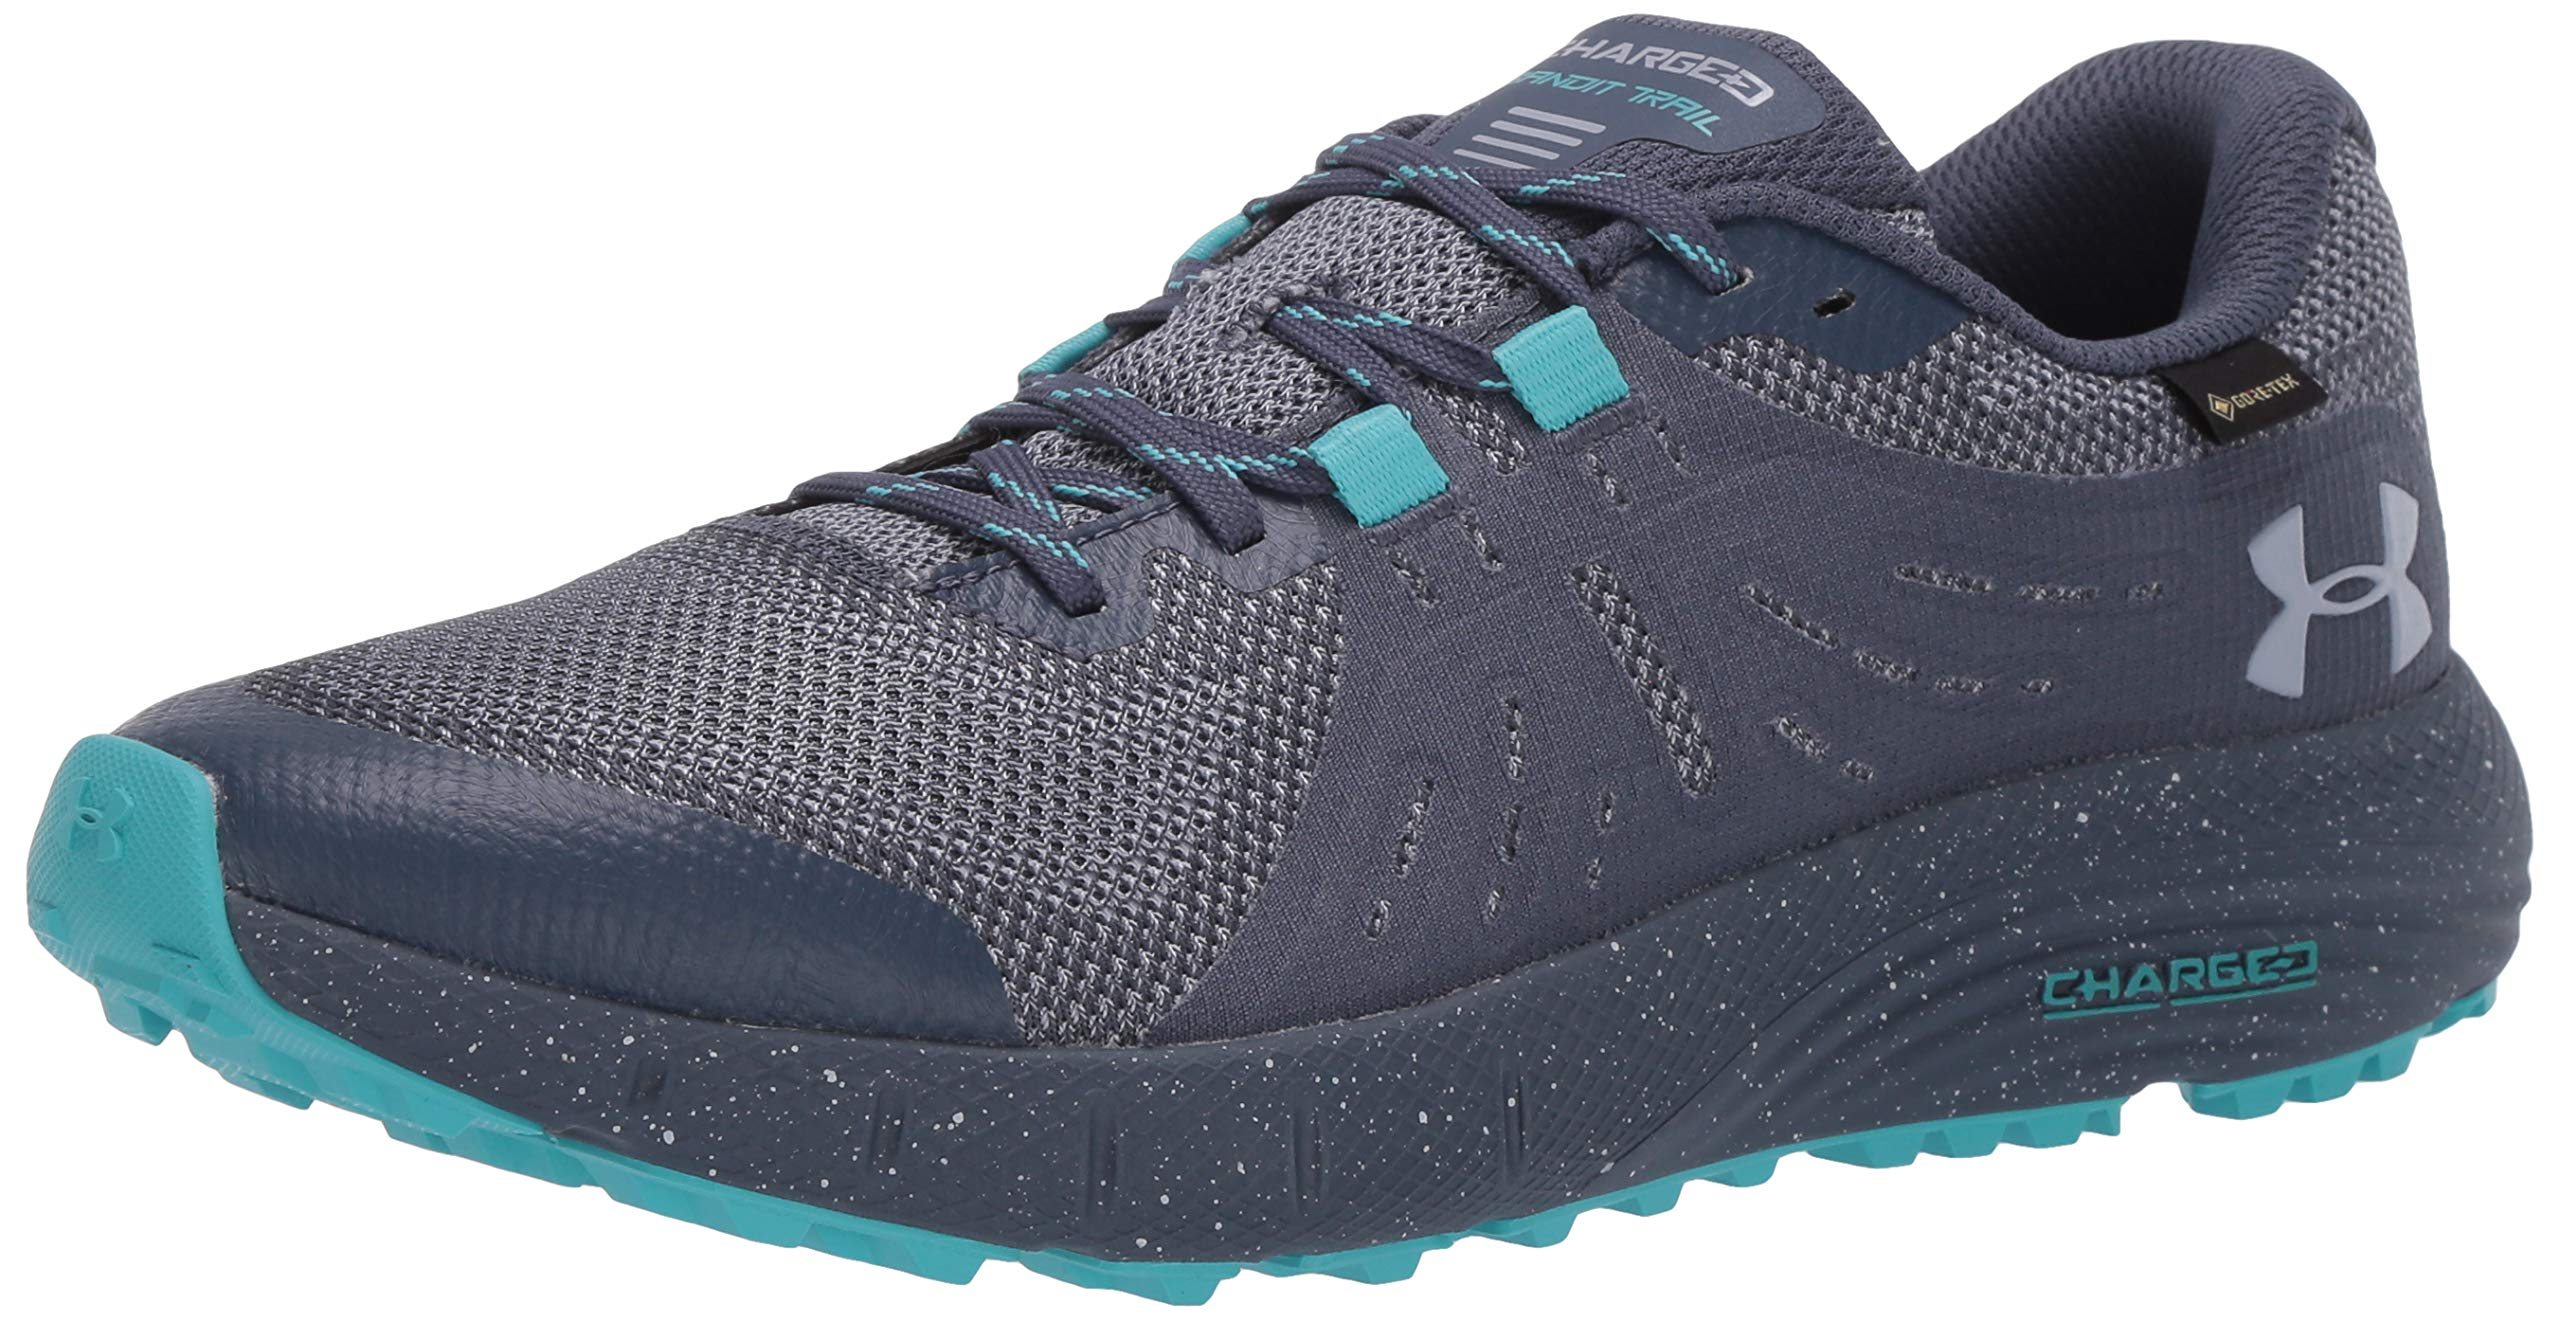 Under Armour Women's Charged Bandit Trail Gore-tex Sneaker